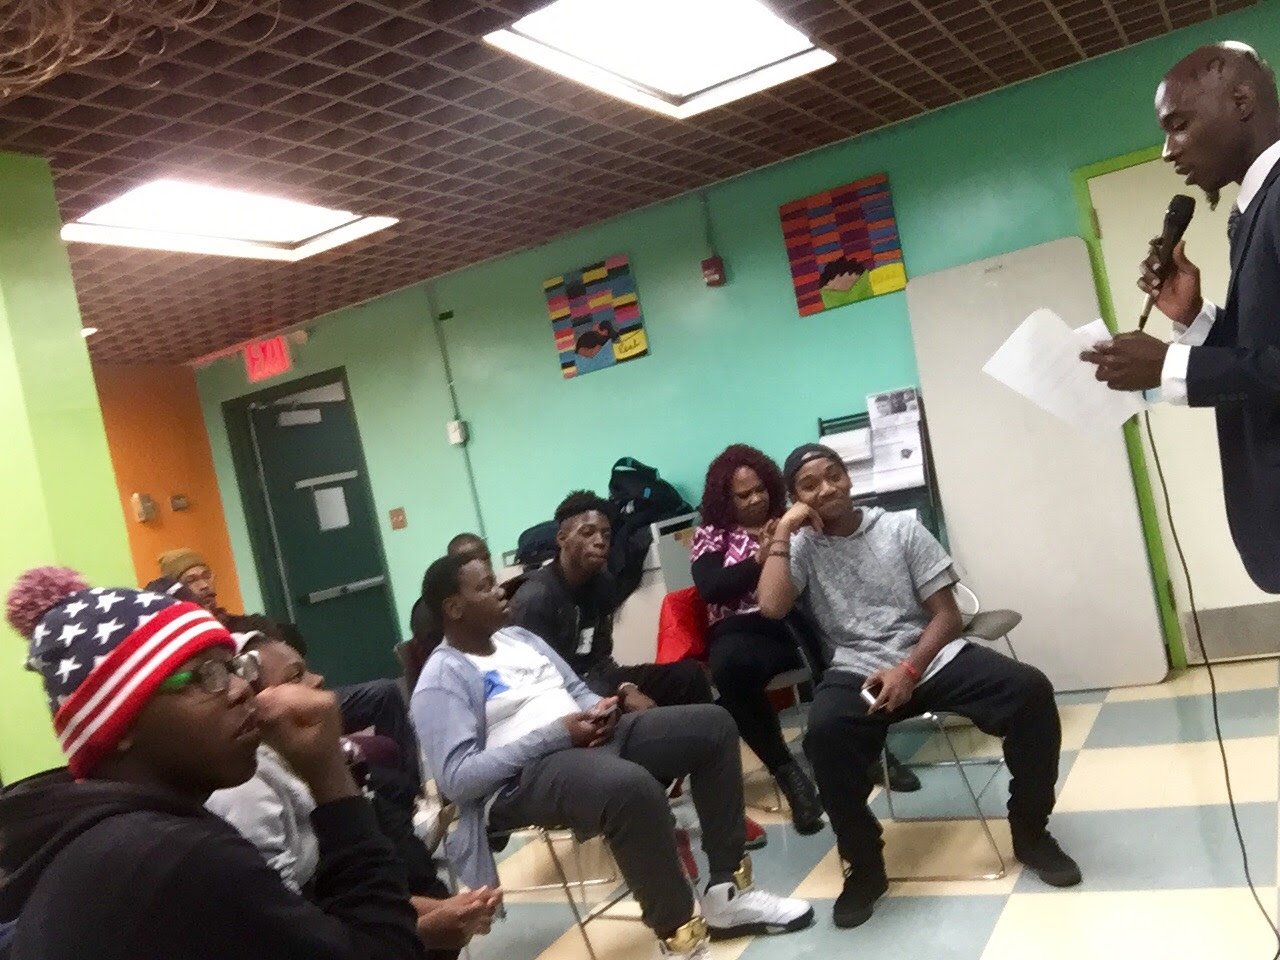 Young people of Weeksville, Brooklyn gathered to make plans for the vacant public land at 45 Somers Street